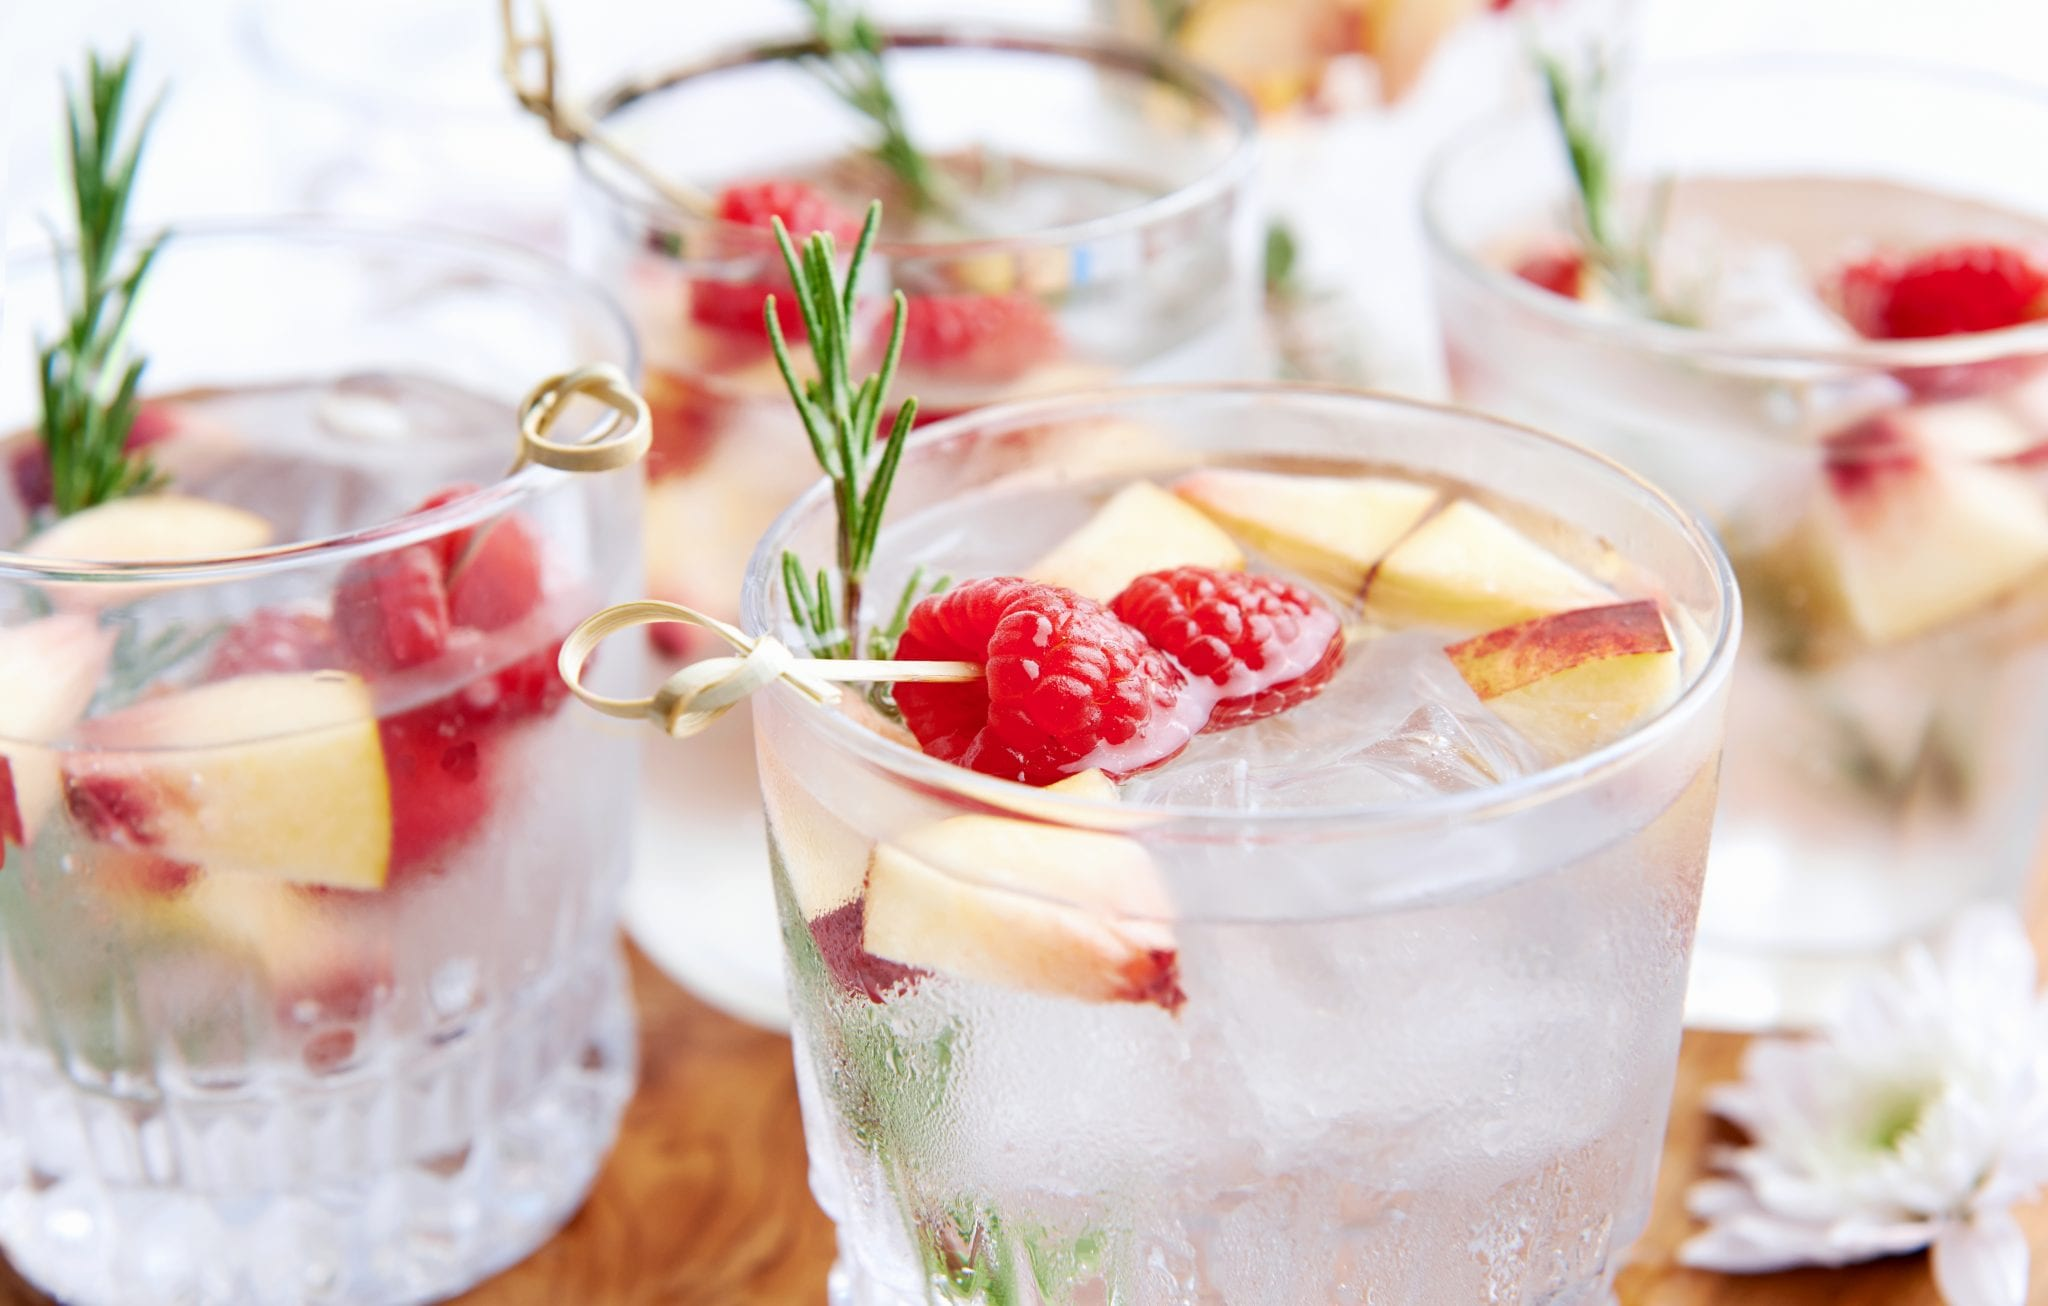 Raspberry Apple Spritzer, holiday drinks, holiday cocktails, healthy holiday drinks, celebrate, holidays, lsf sleigh, daily workouts